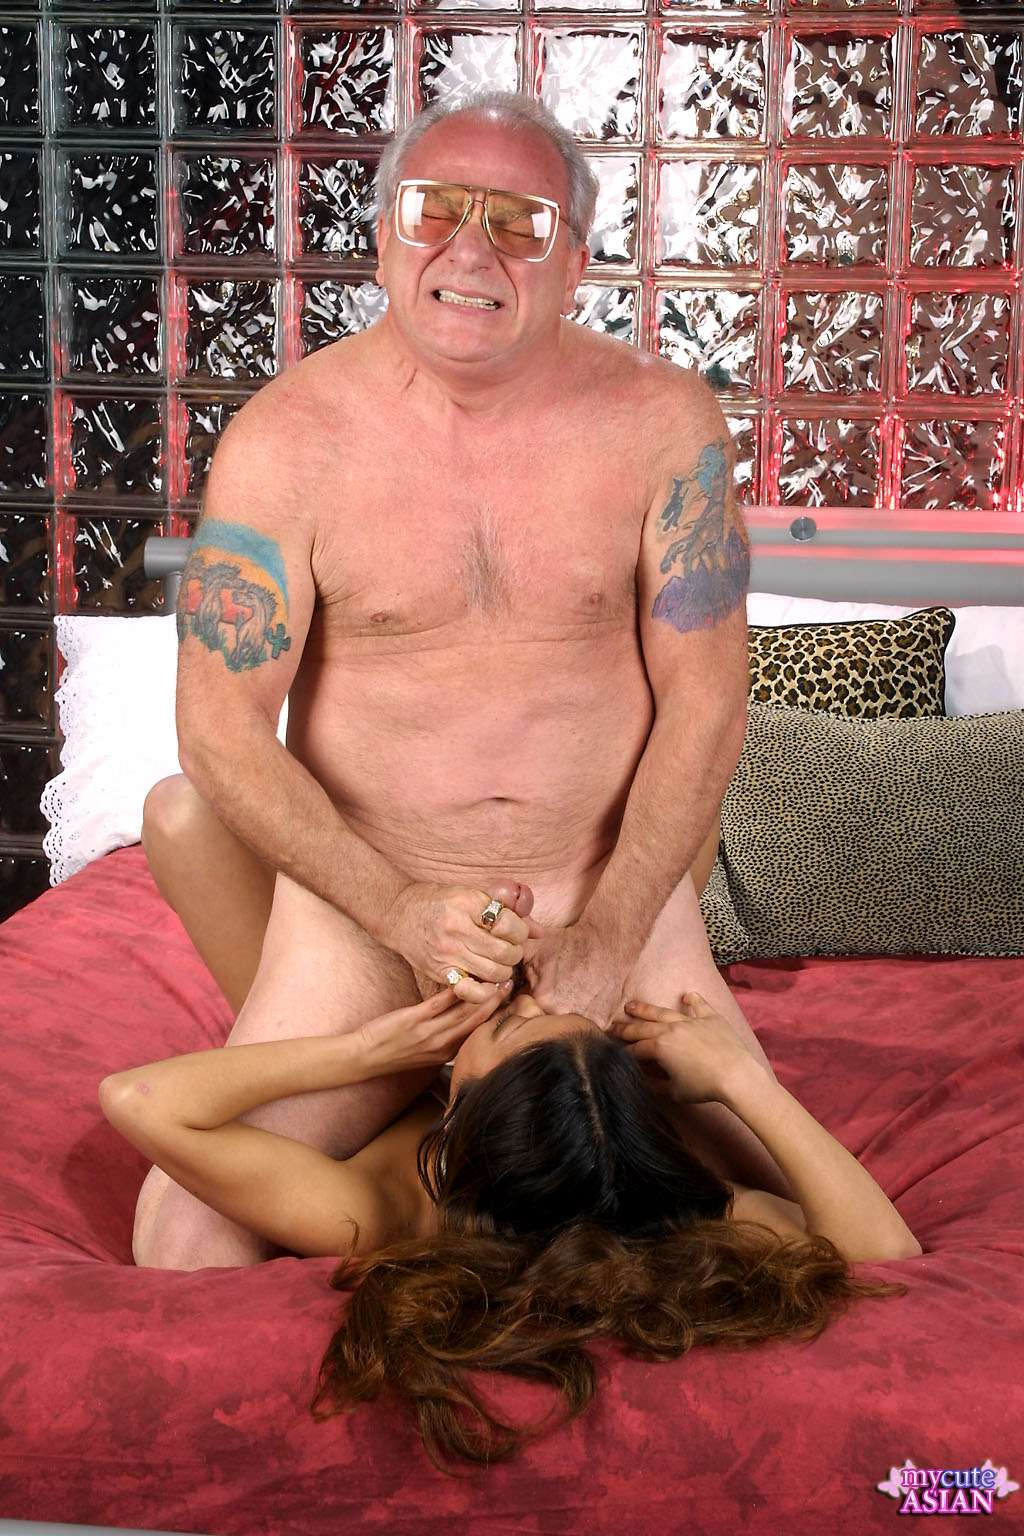 Milf gives dirty bj